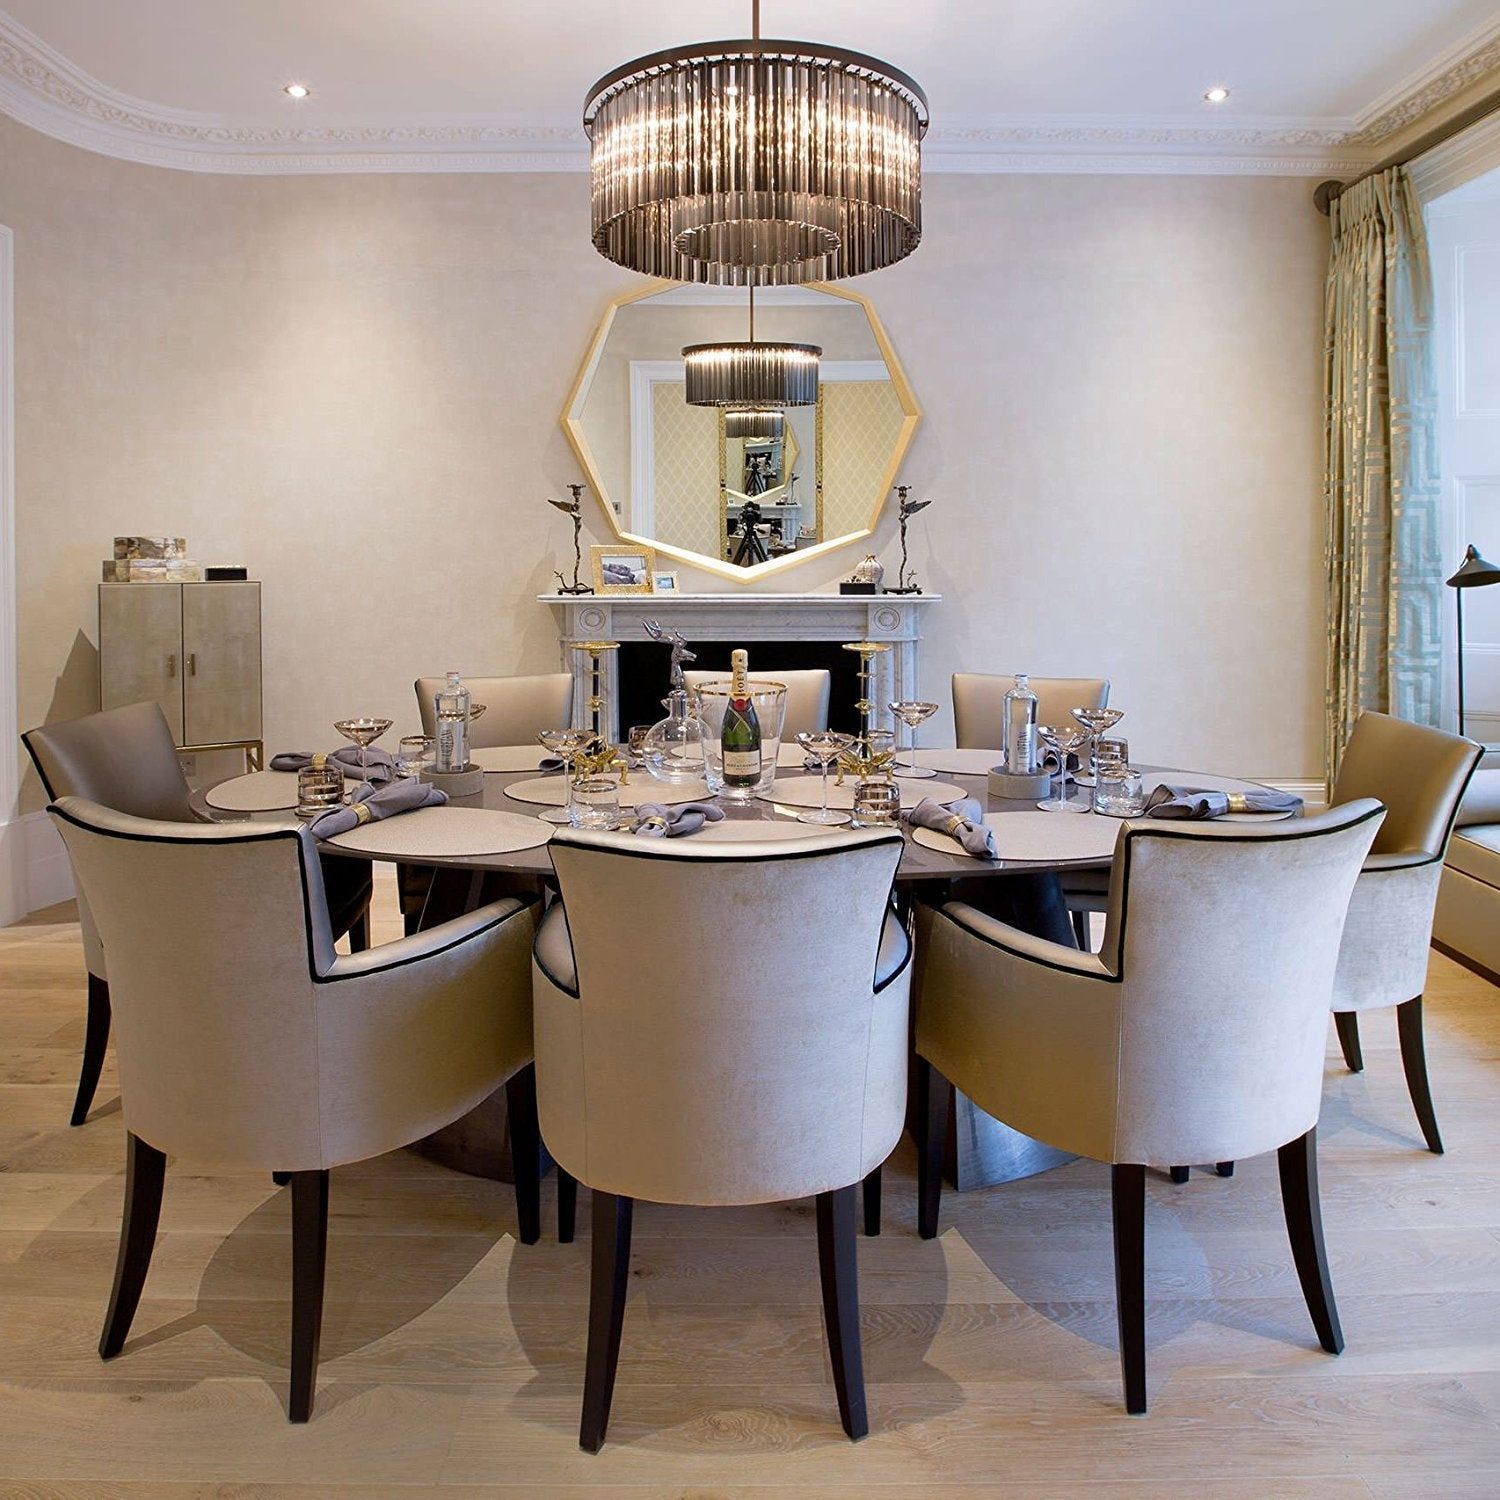 Glass Chandeliers For Dining Room: Rectangular Crystal Chandelier